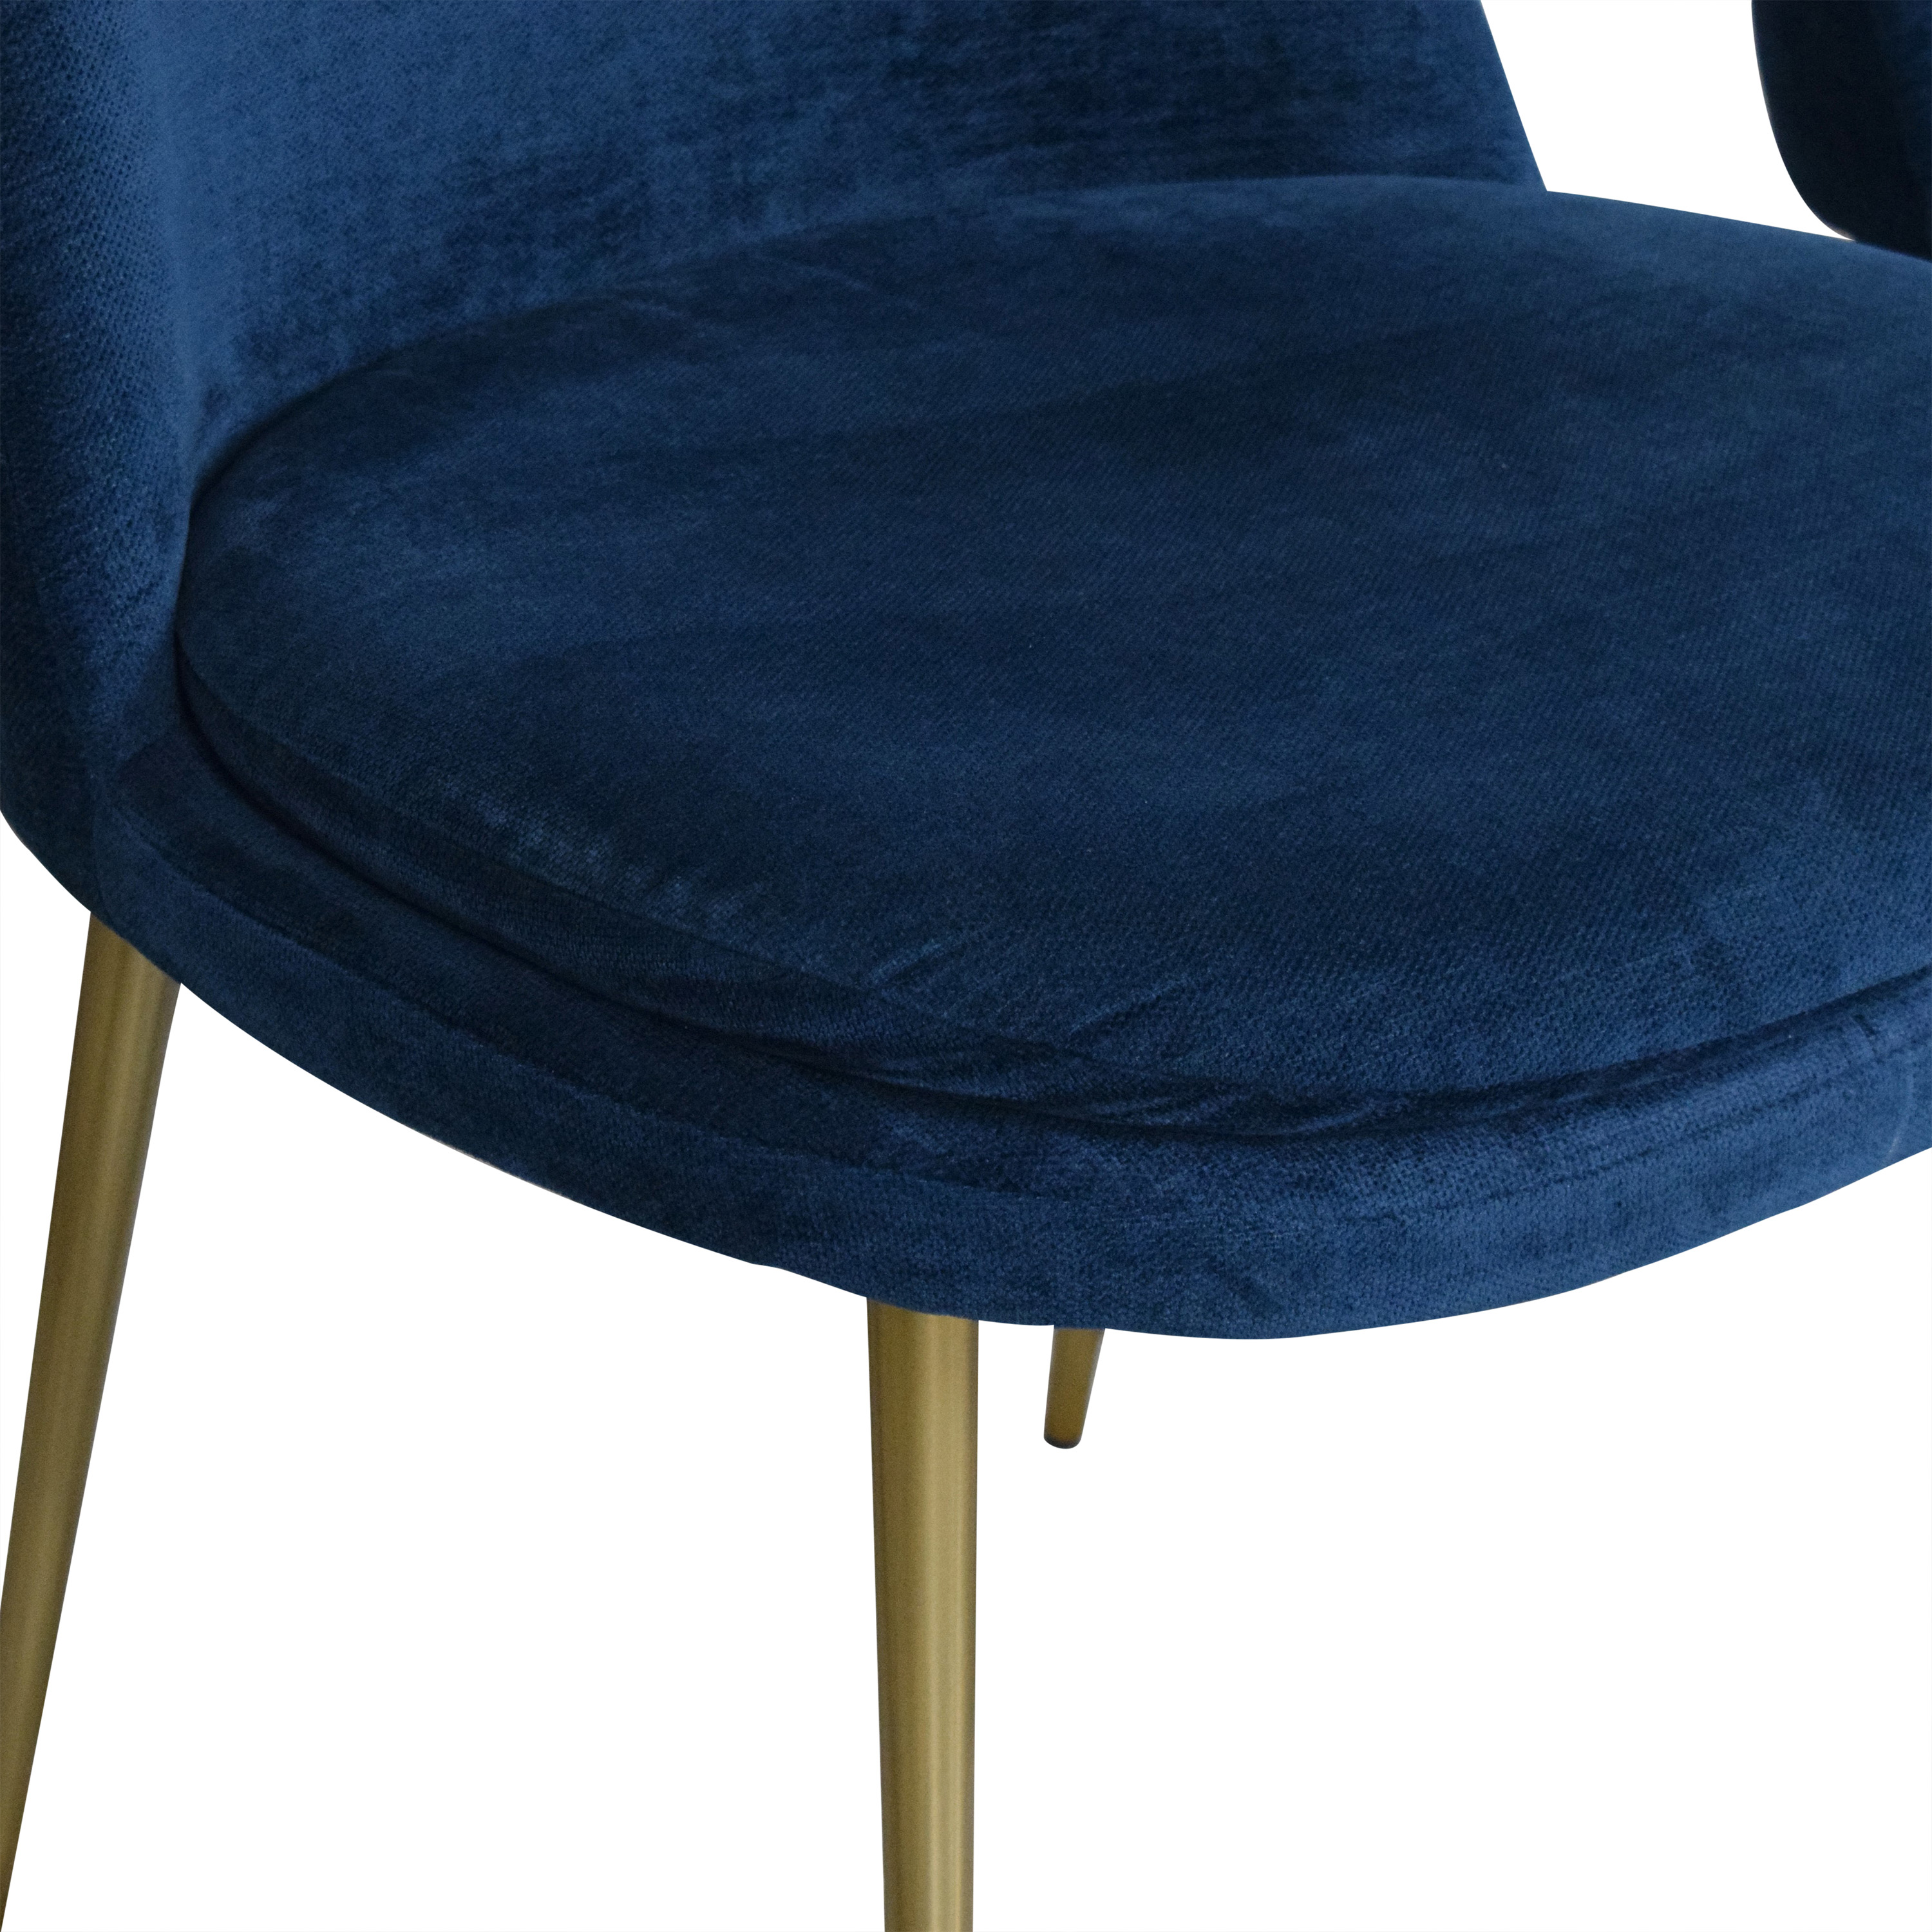 West Elm West Elm Mid-Century Upholstered Dining Chairs blue & gold